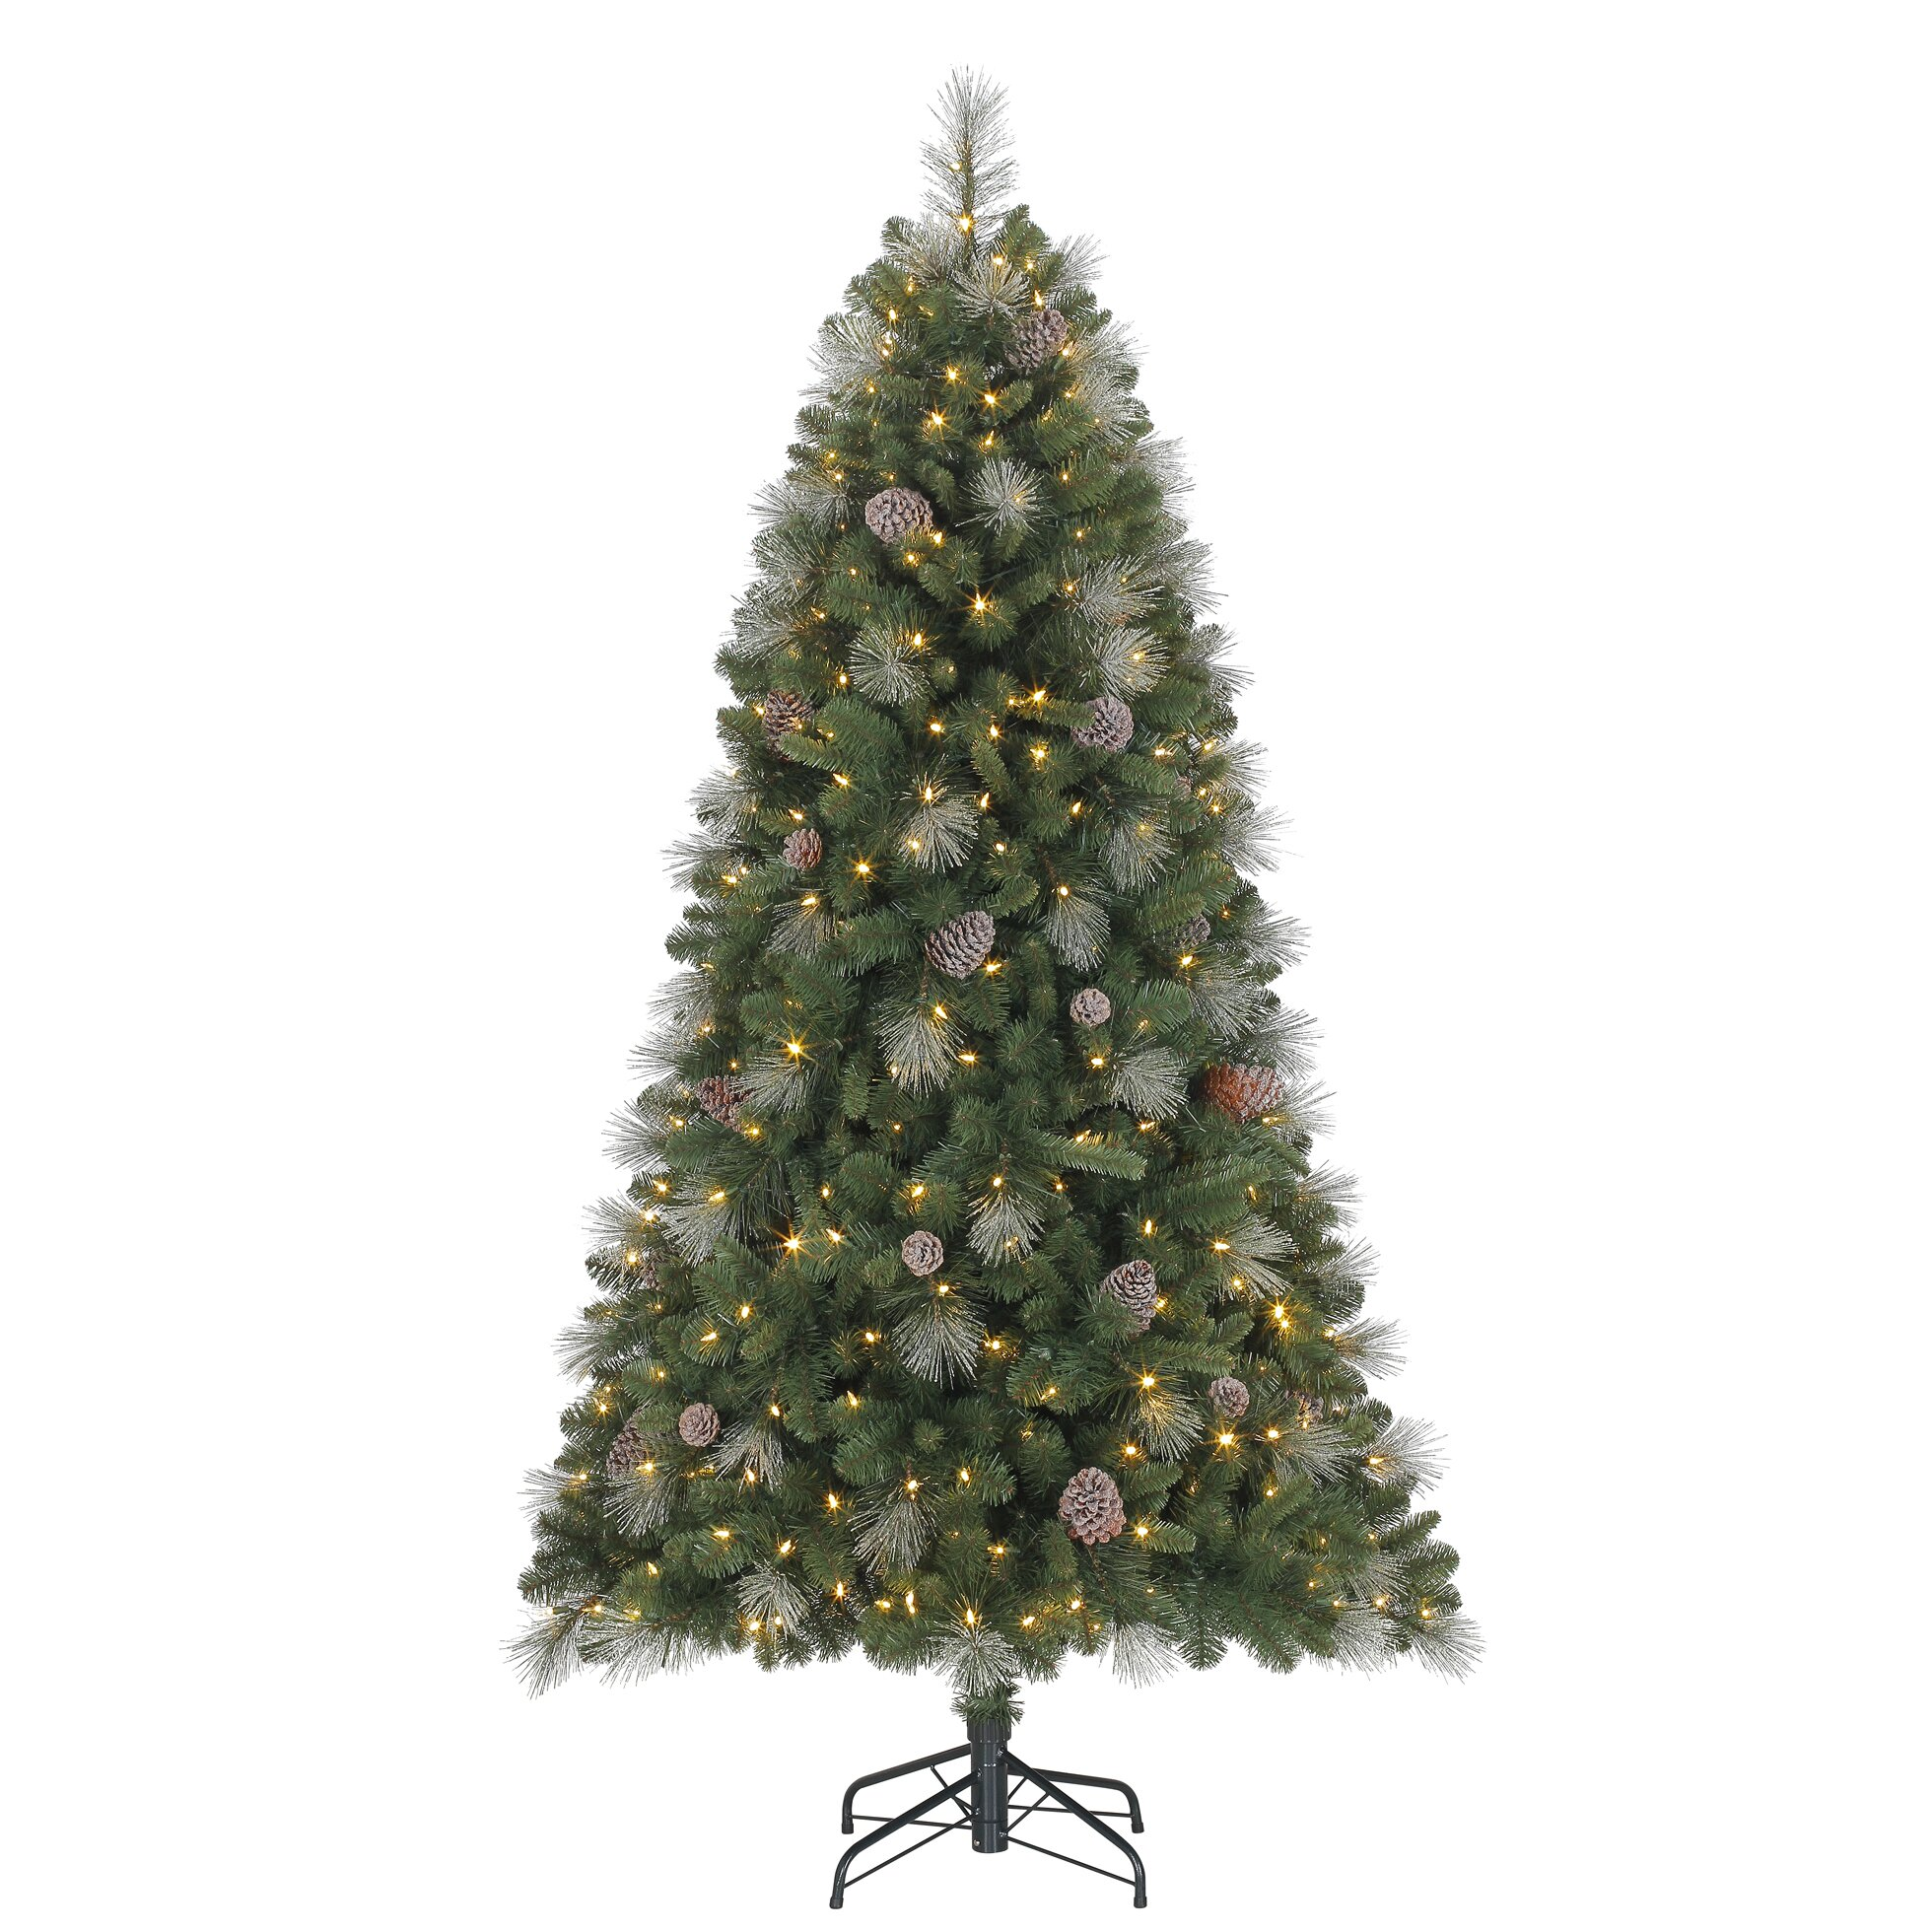 Green And White Christmas Tree: Polygroup 6.5' Green/Silver Fir Artificial Christmas Tree